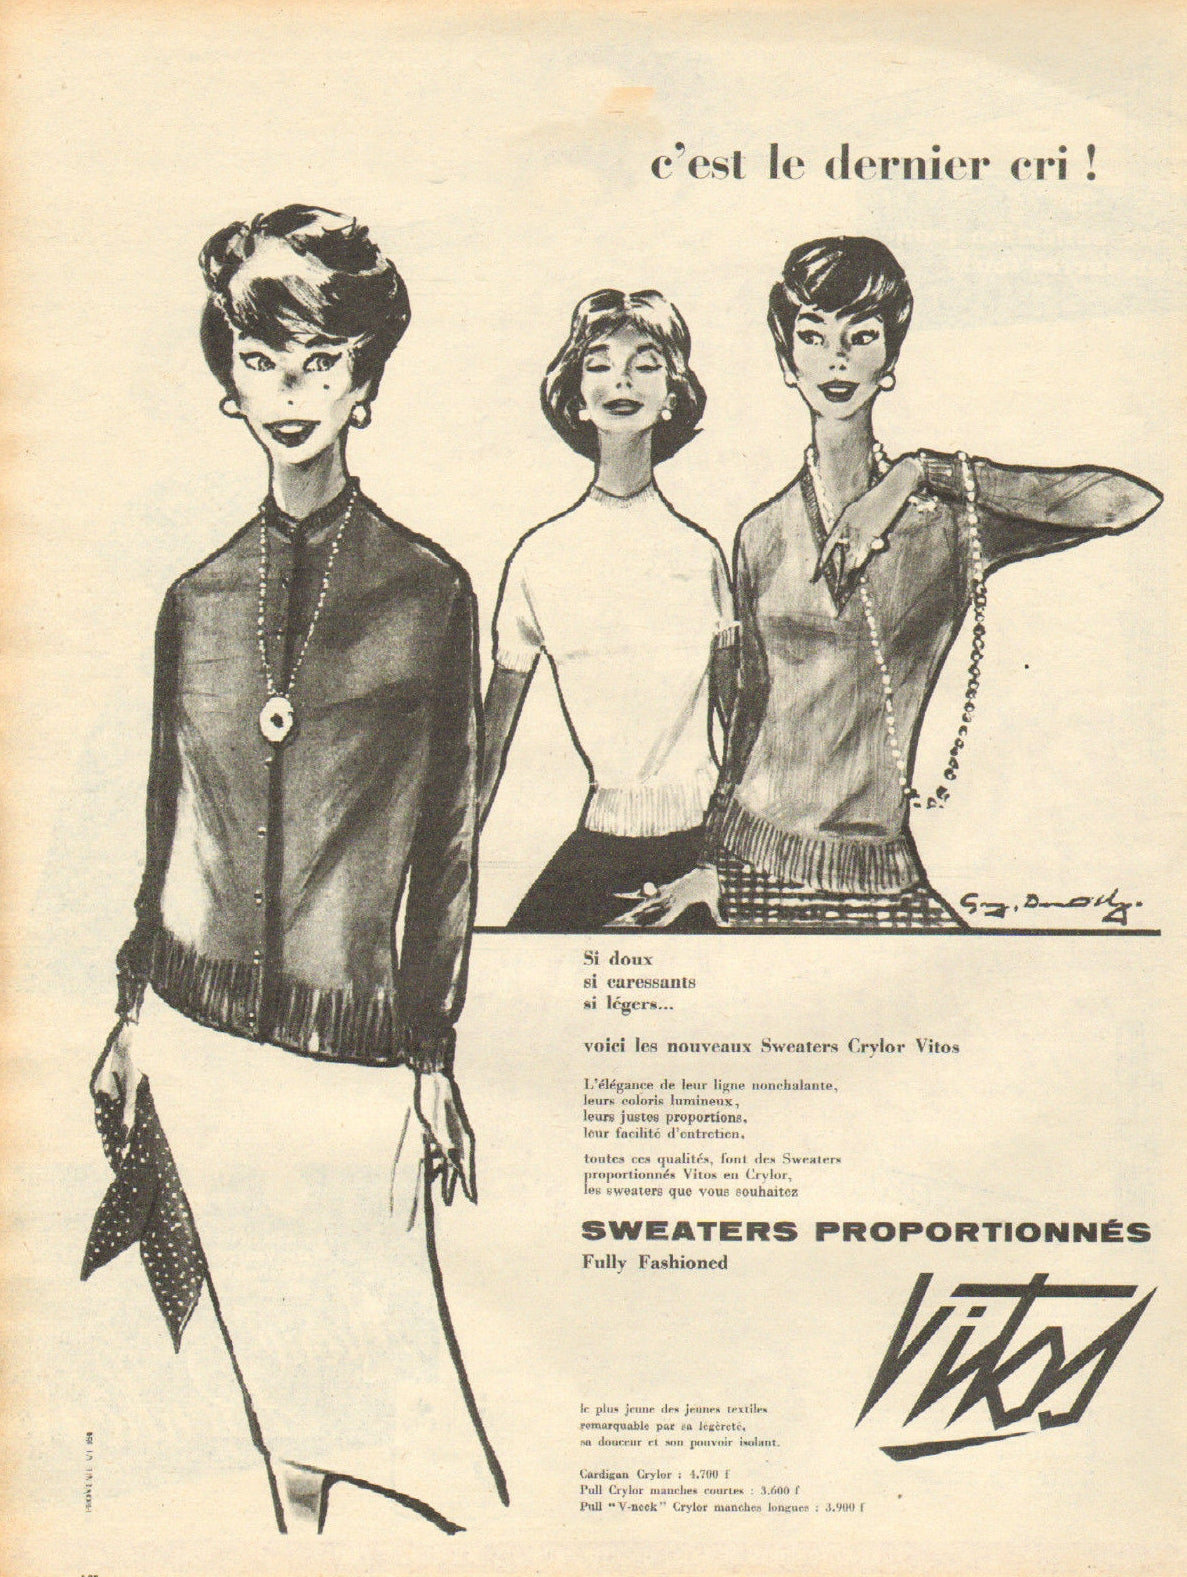 Vitos fully-fashioned sweaters first advertisings in 1958